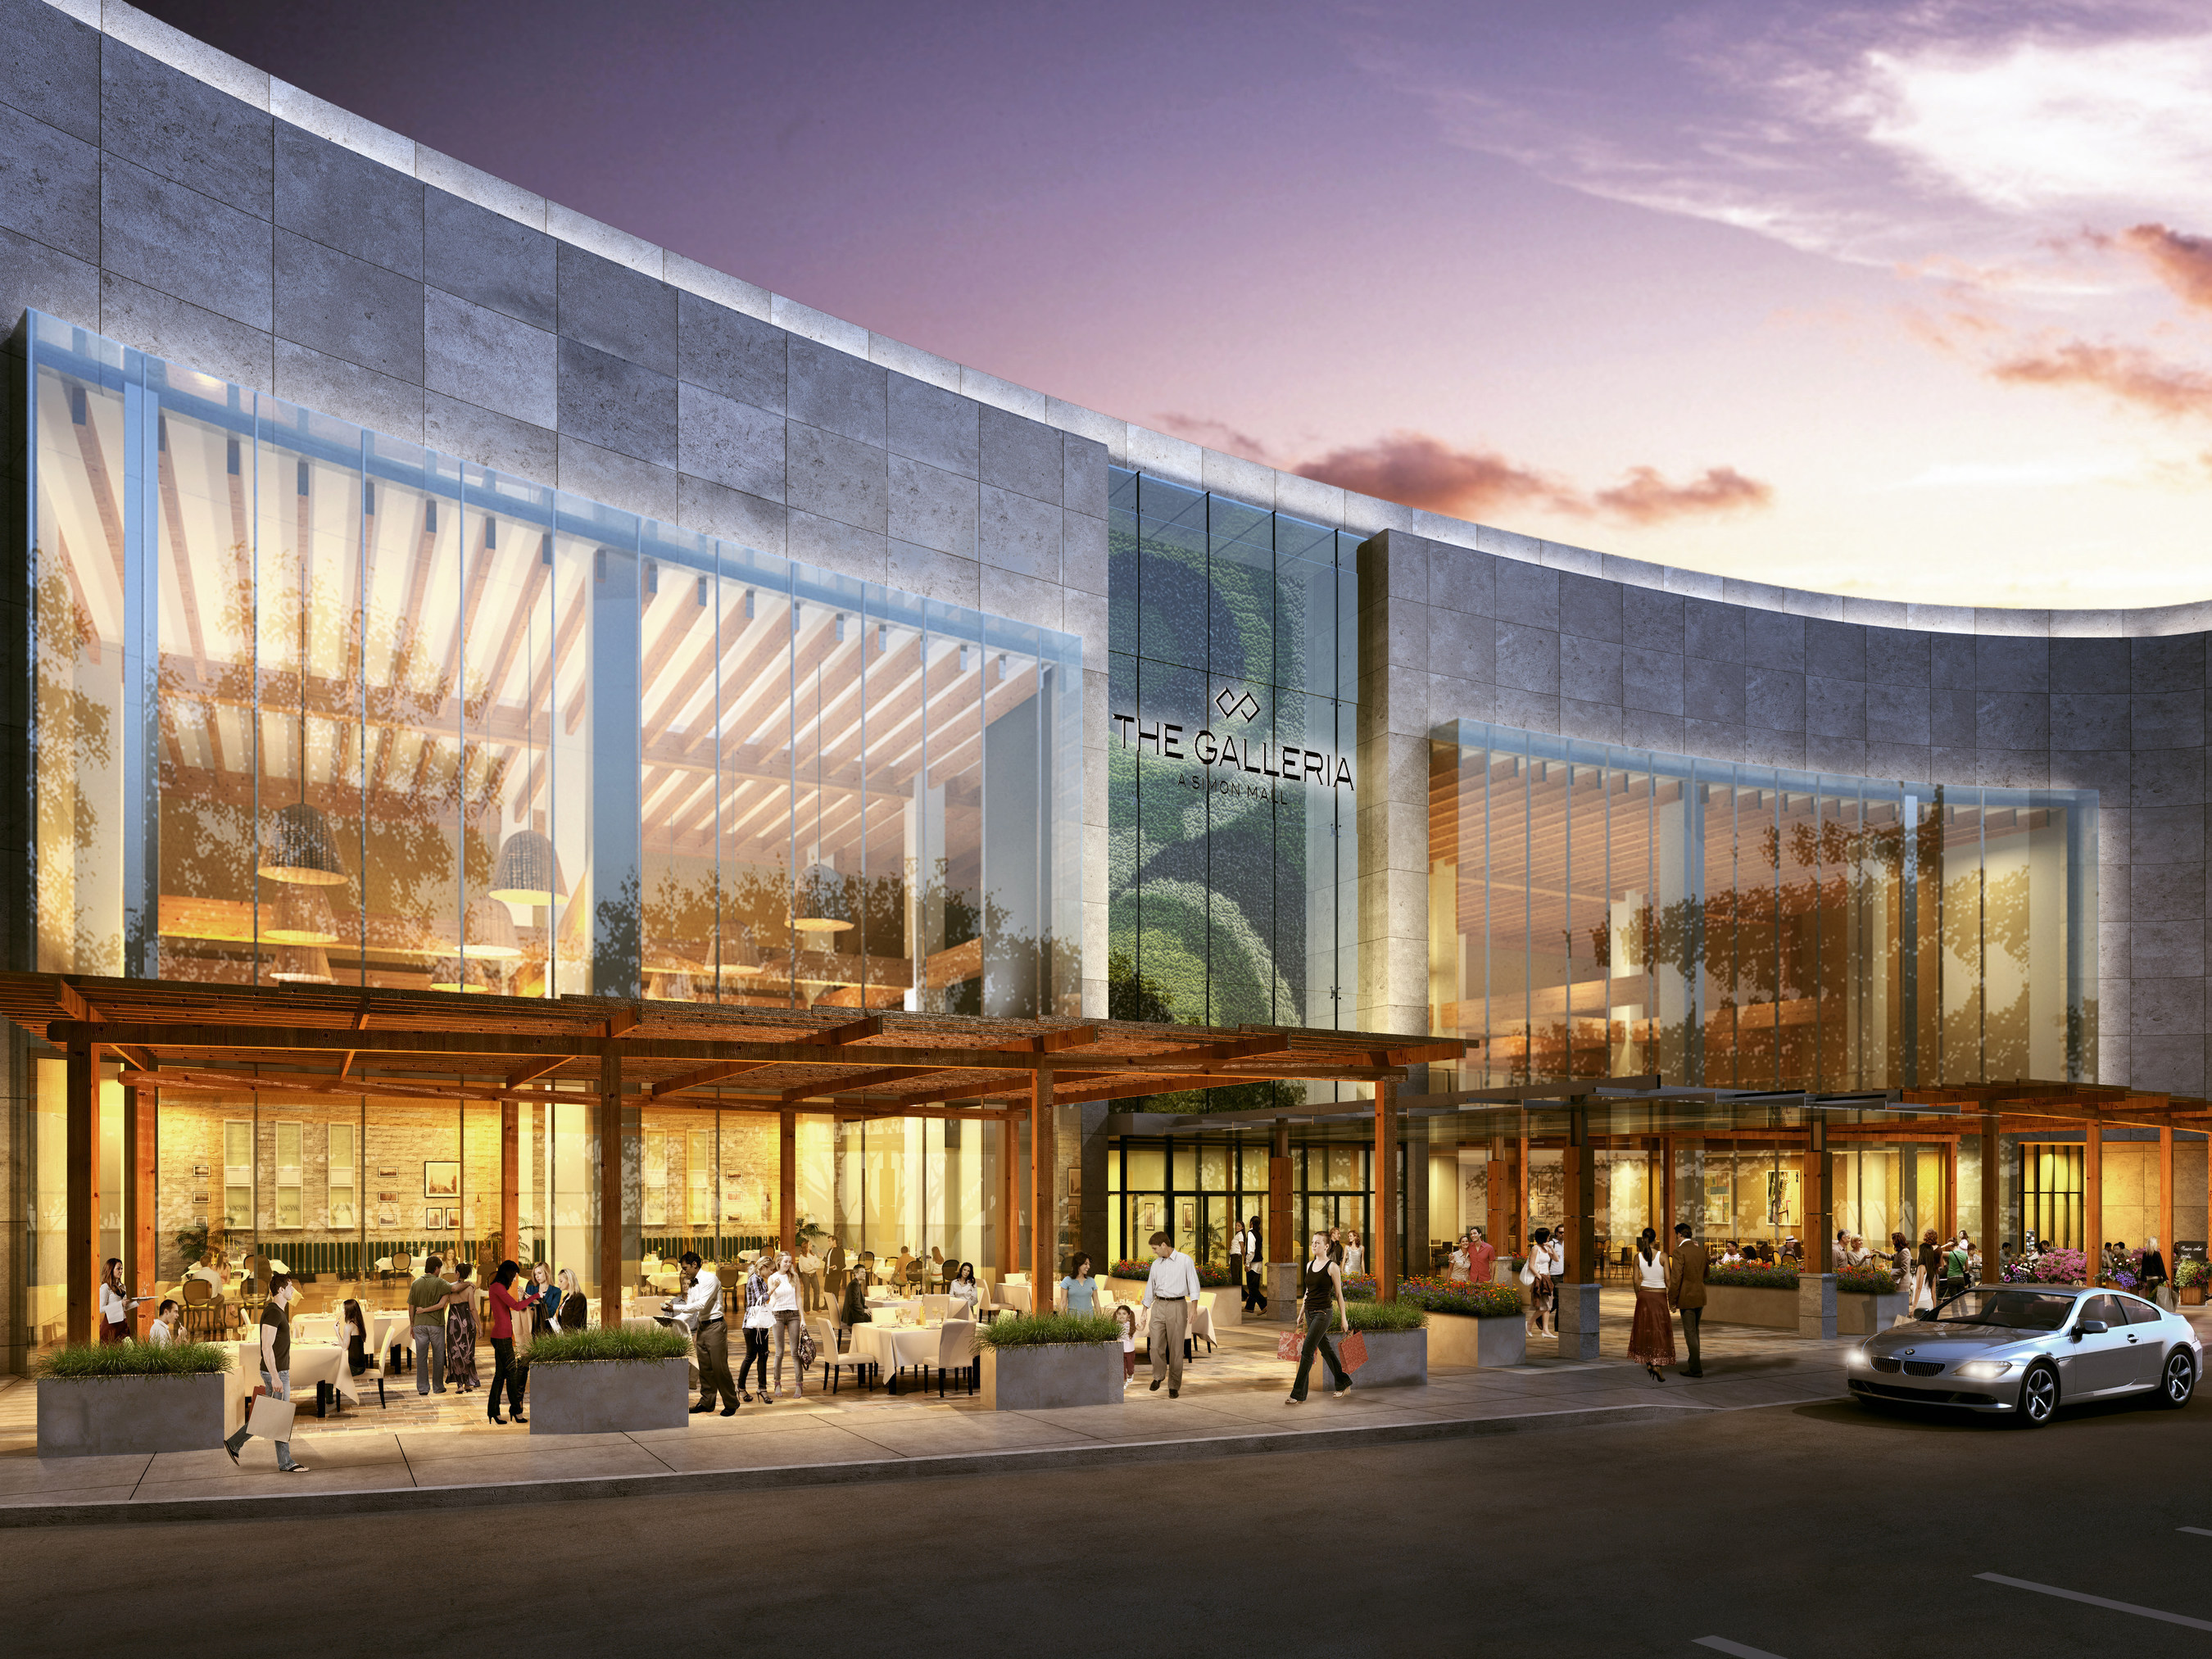 008ad39c2e05 The Galleria at Houston is currently undergoing an extensive transformation  and has announced several new-